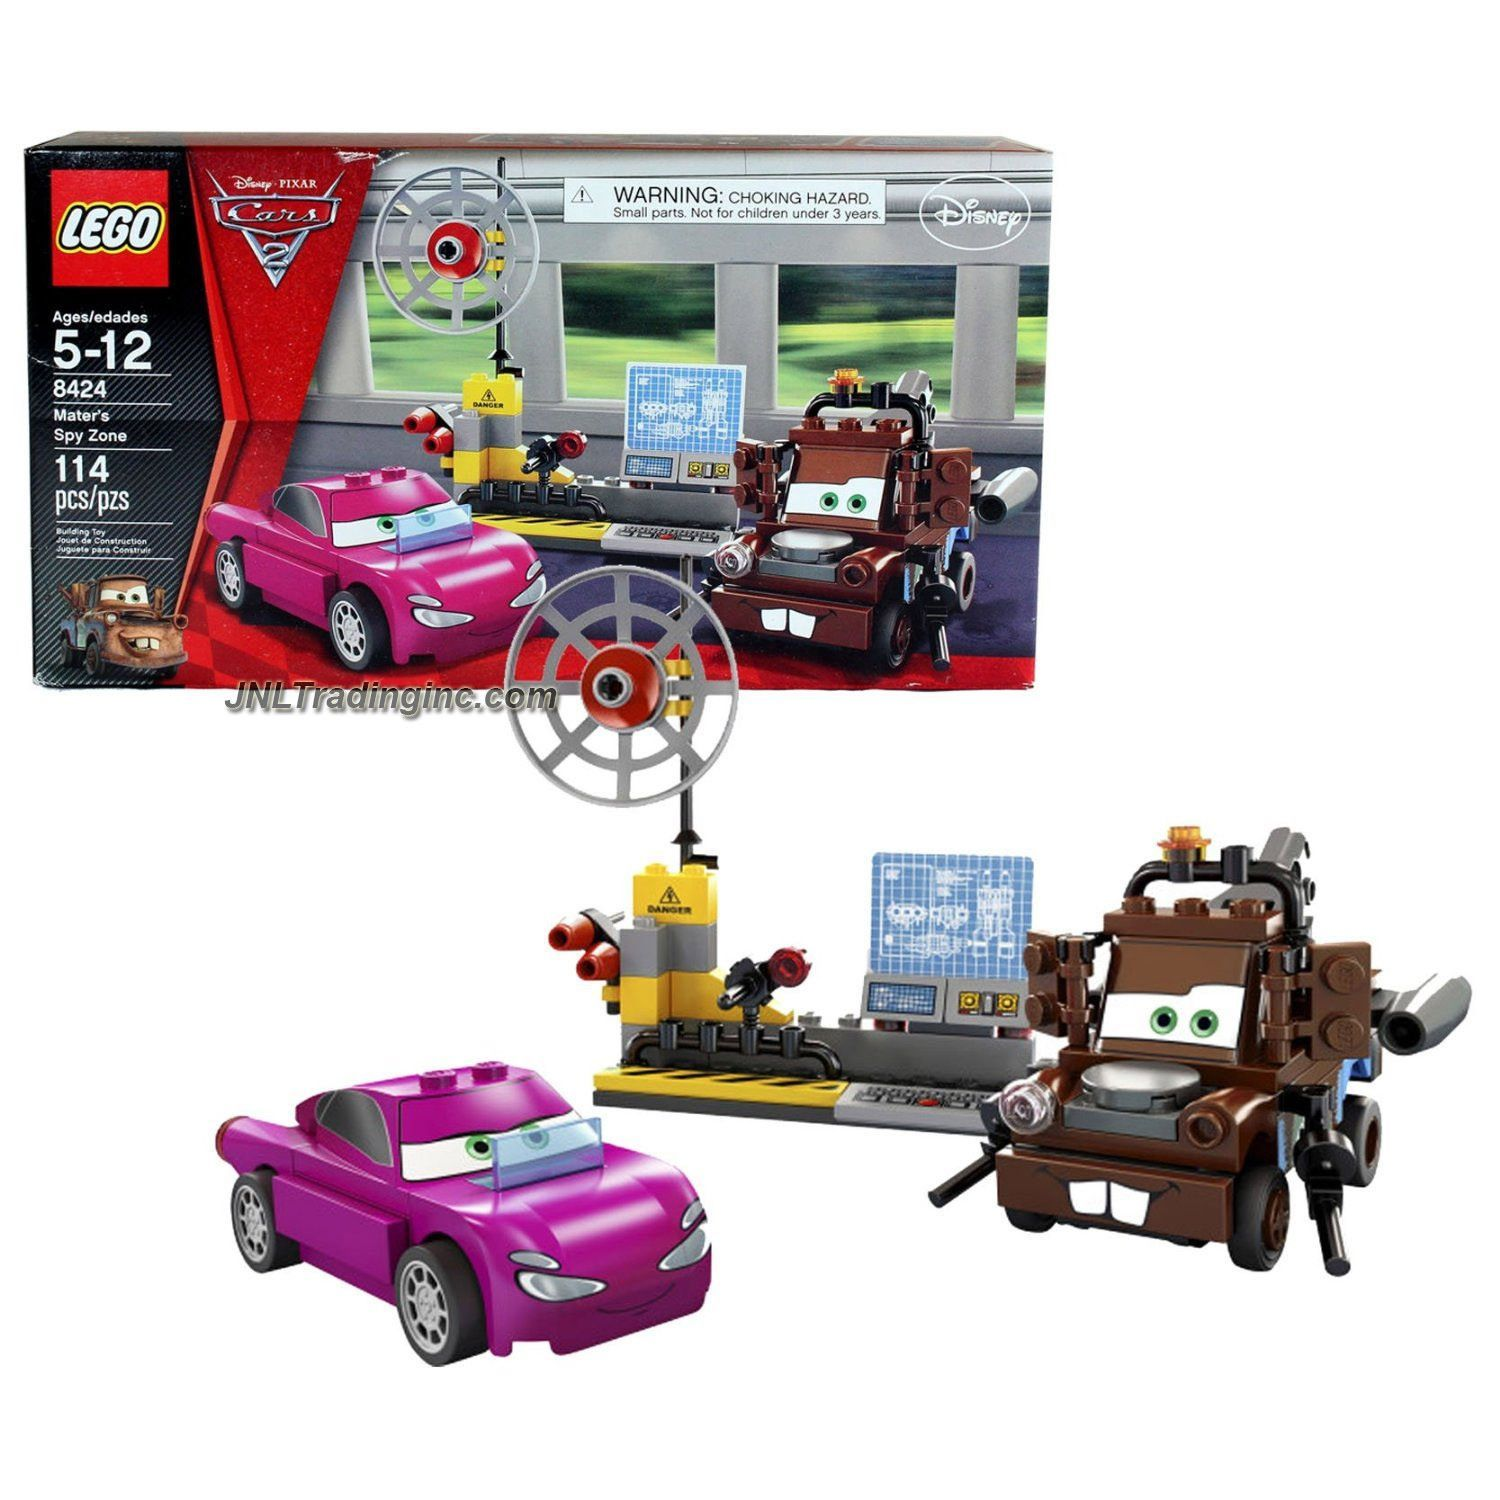 Lego Disney Pixar Cars Set 8424 Mater S Spy Zone With Spy Computer Satellite Dish Plus Agent Mater Holley Shiftwell Piece 114 Disney Lego Minifigures Disney Pixar Cars Lego Disney